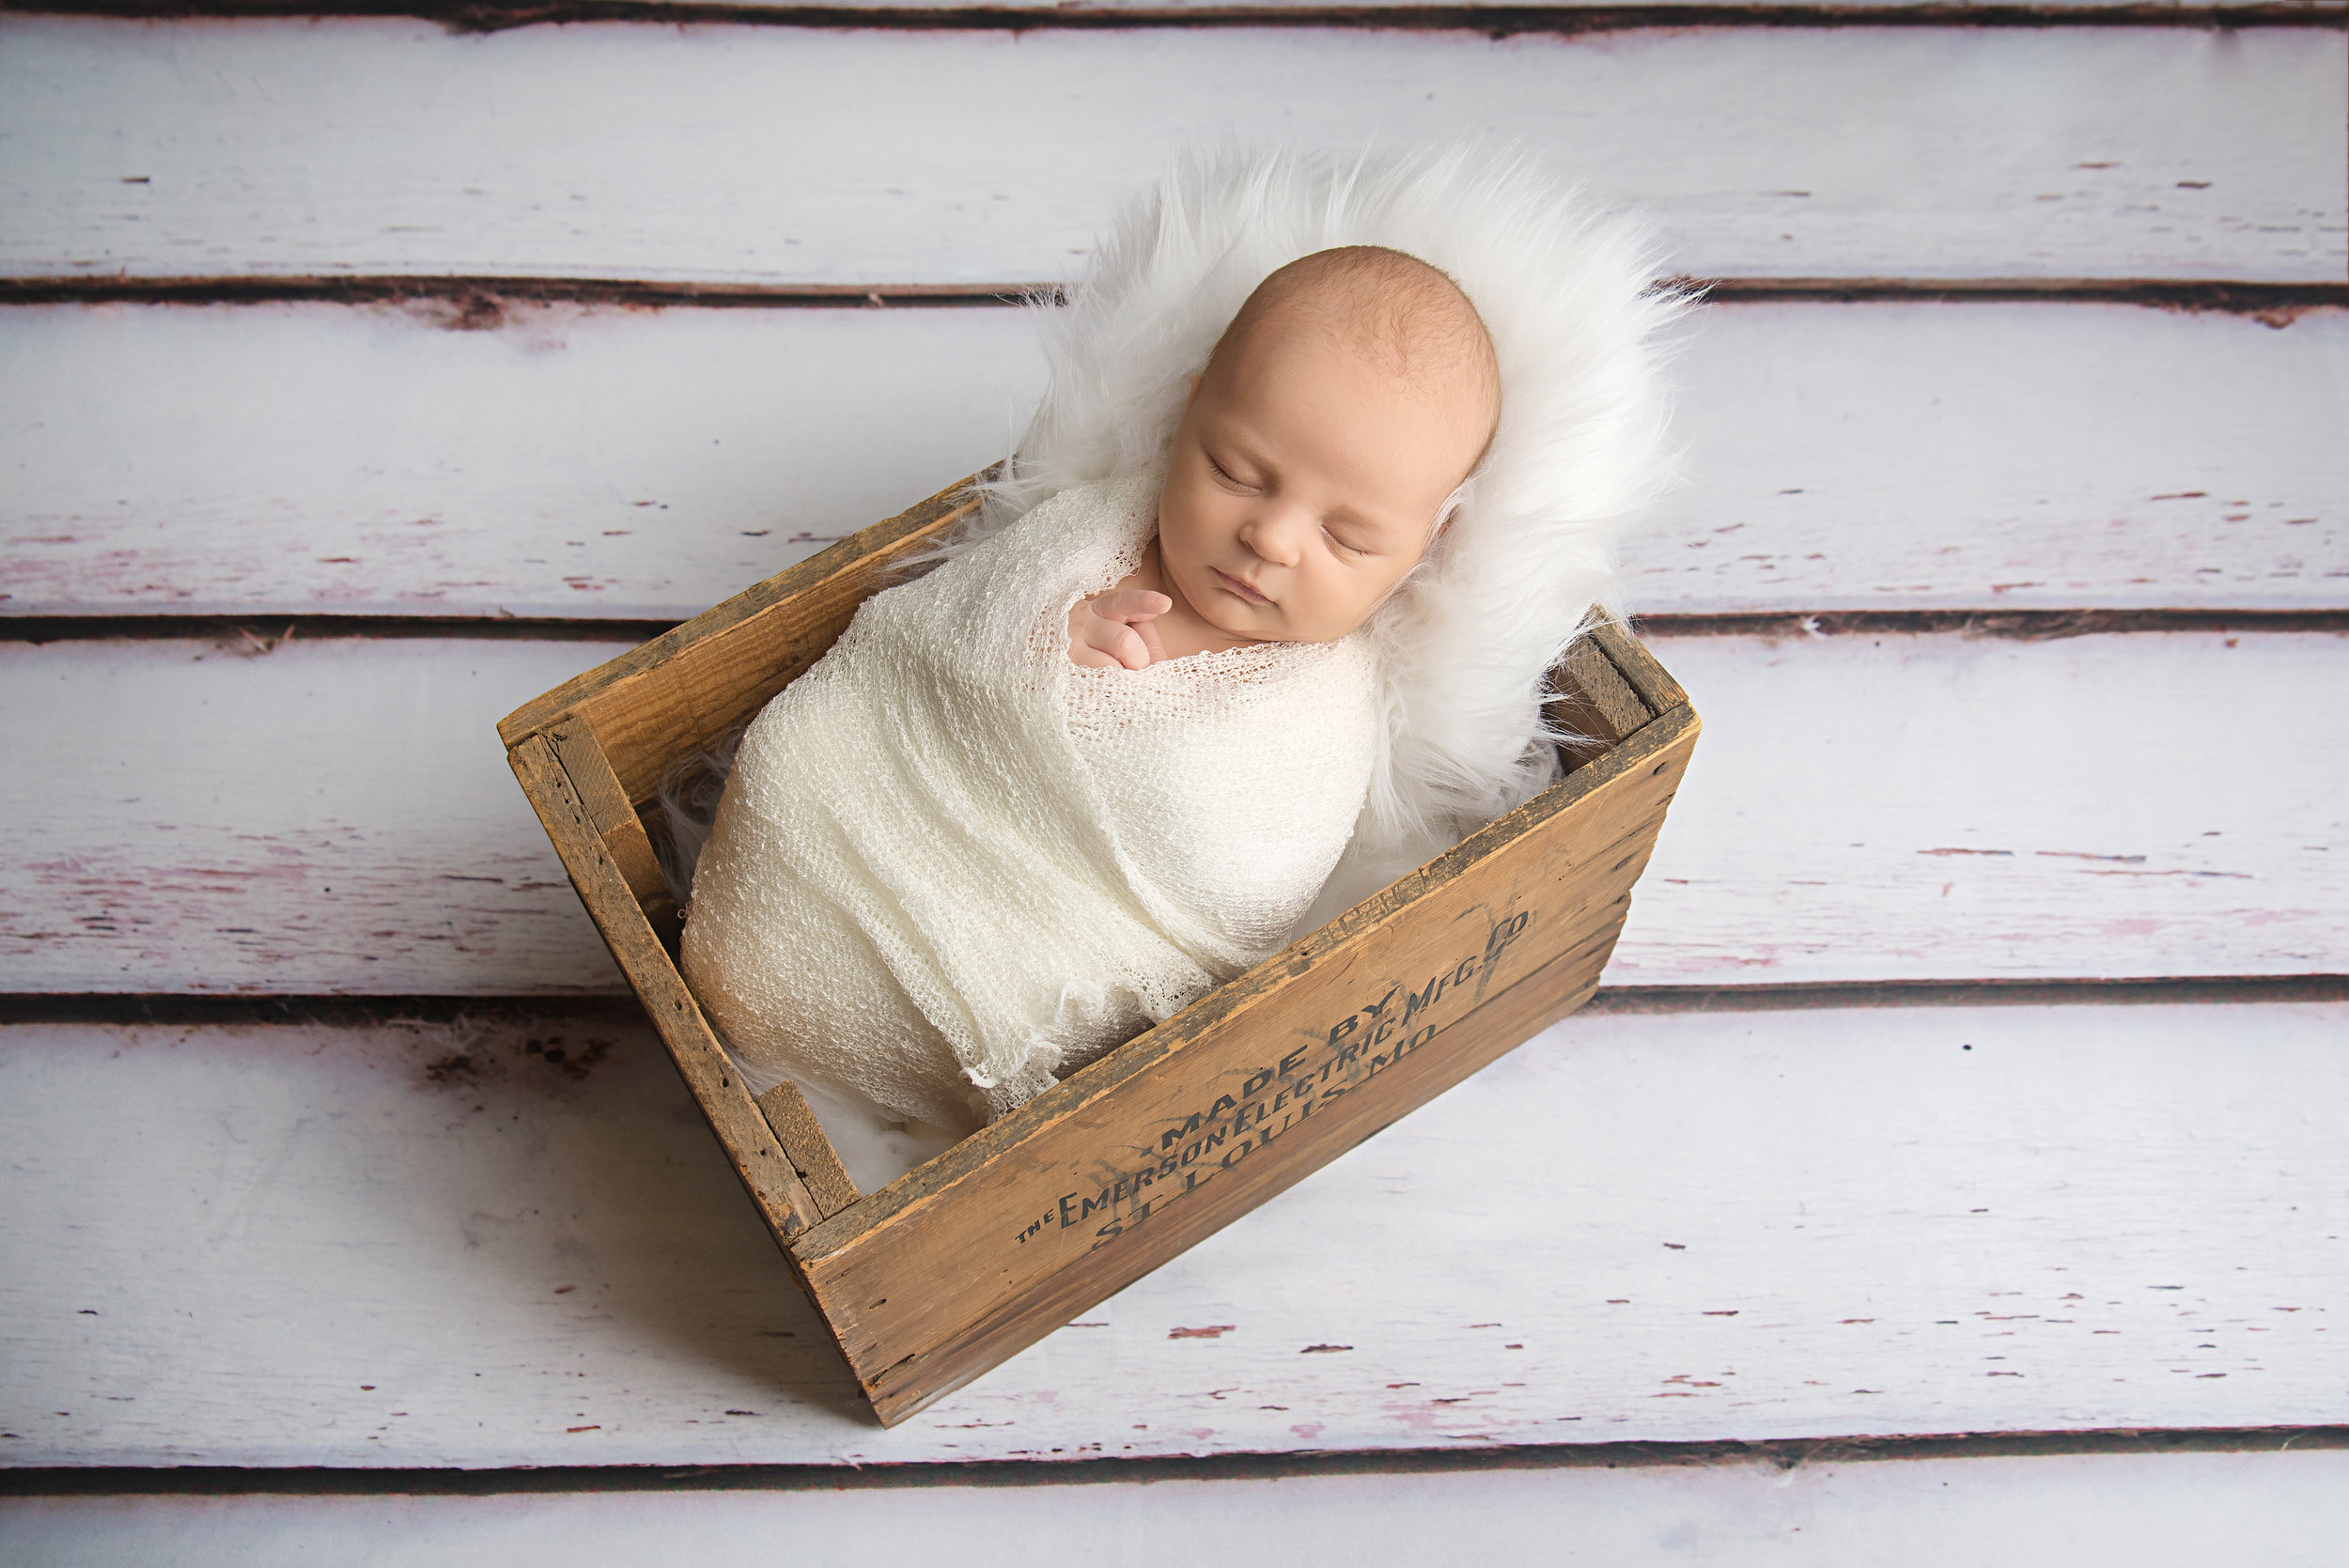 st-louis-newborn-photographer-baby-boy-wrapped-in-white-in-st-louis-emerson-electric-box.jpg